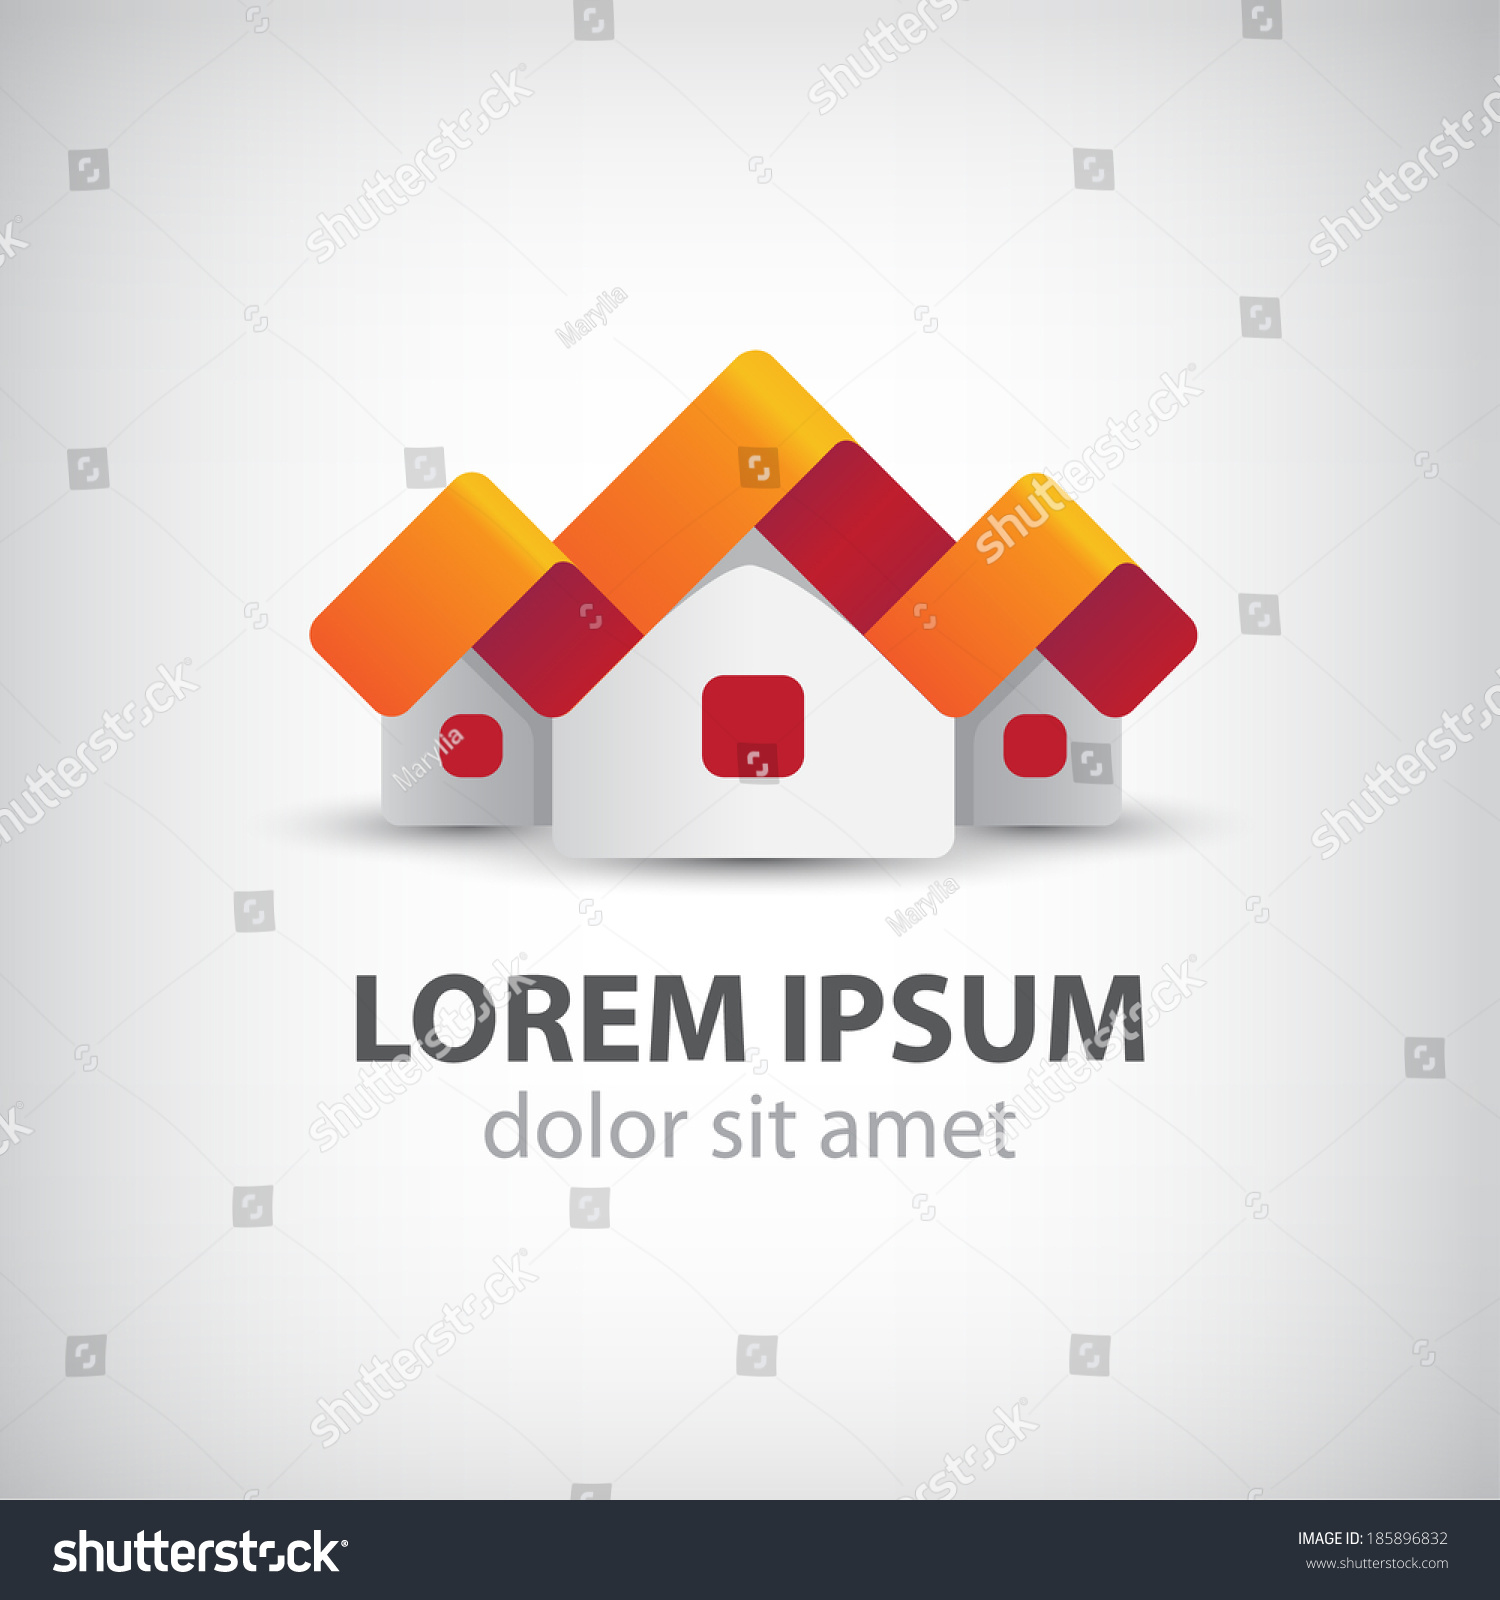 Origami House Images Stock Photos Amp Vectors Shutterstock